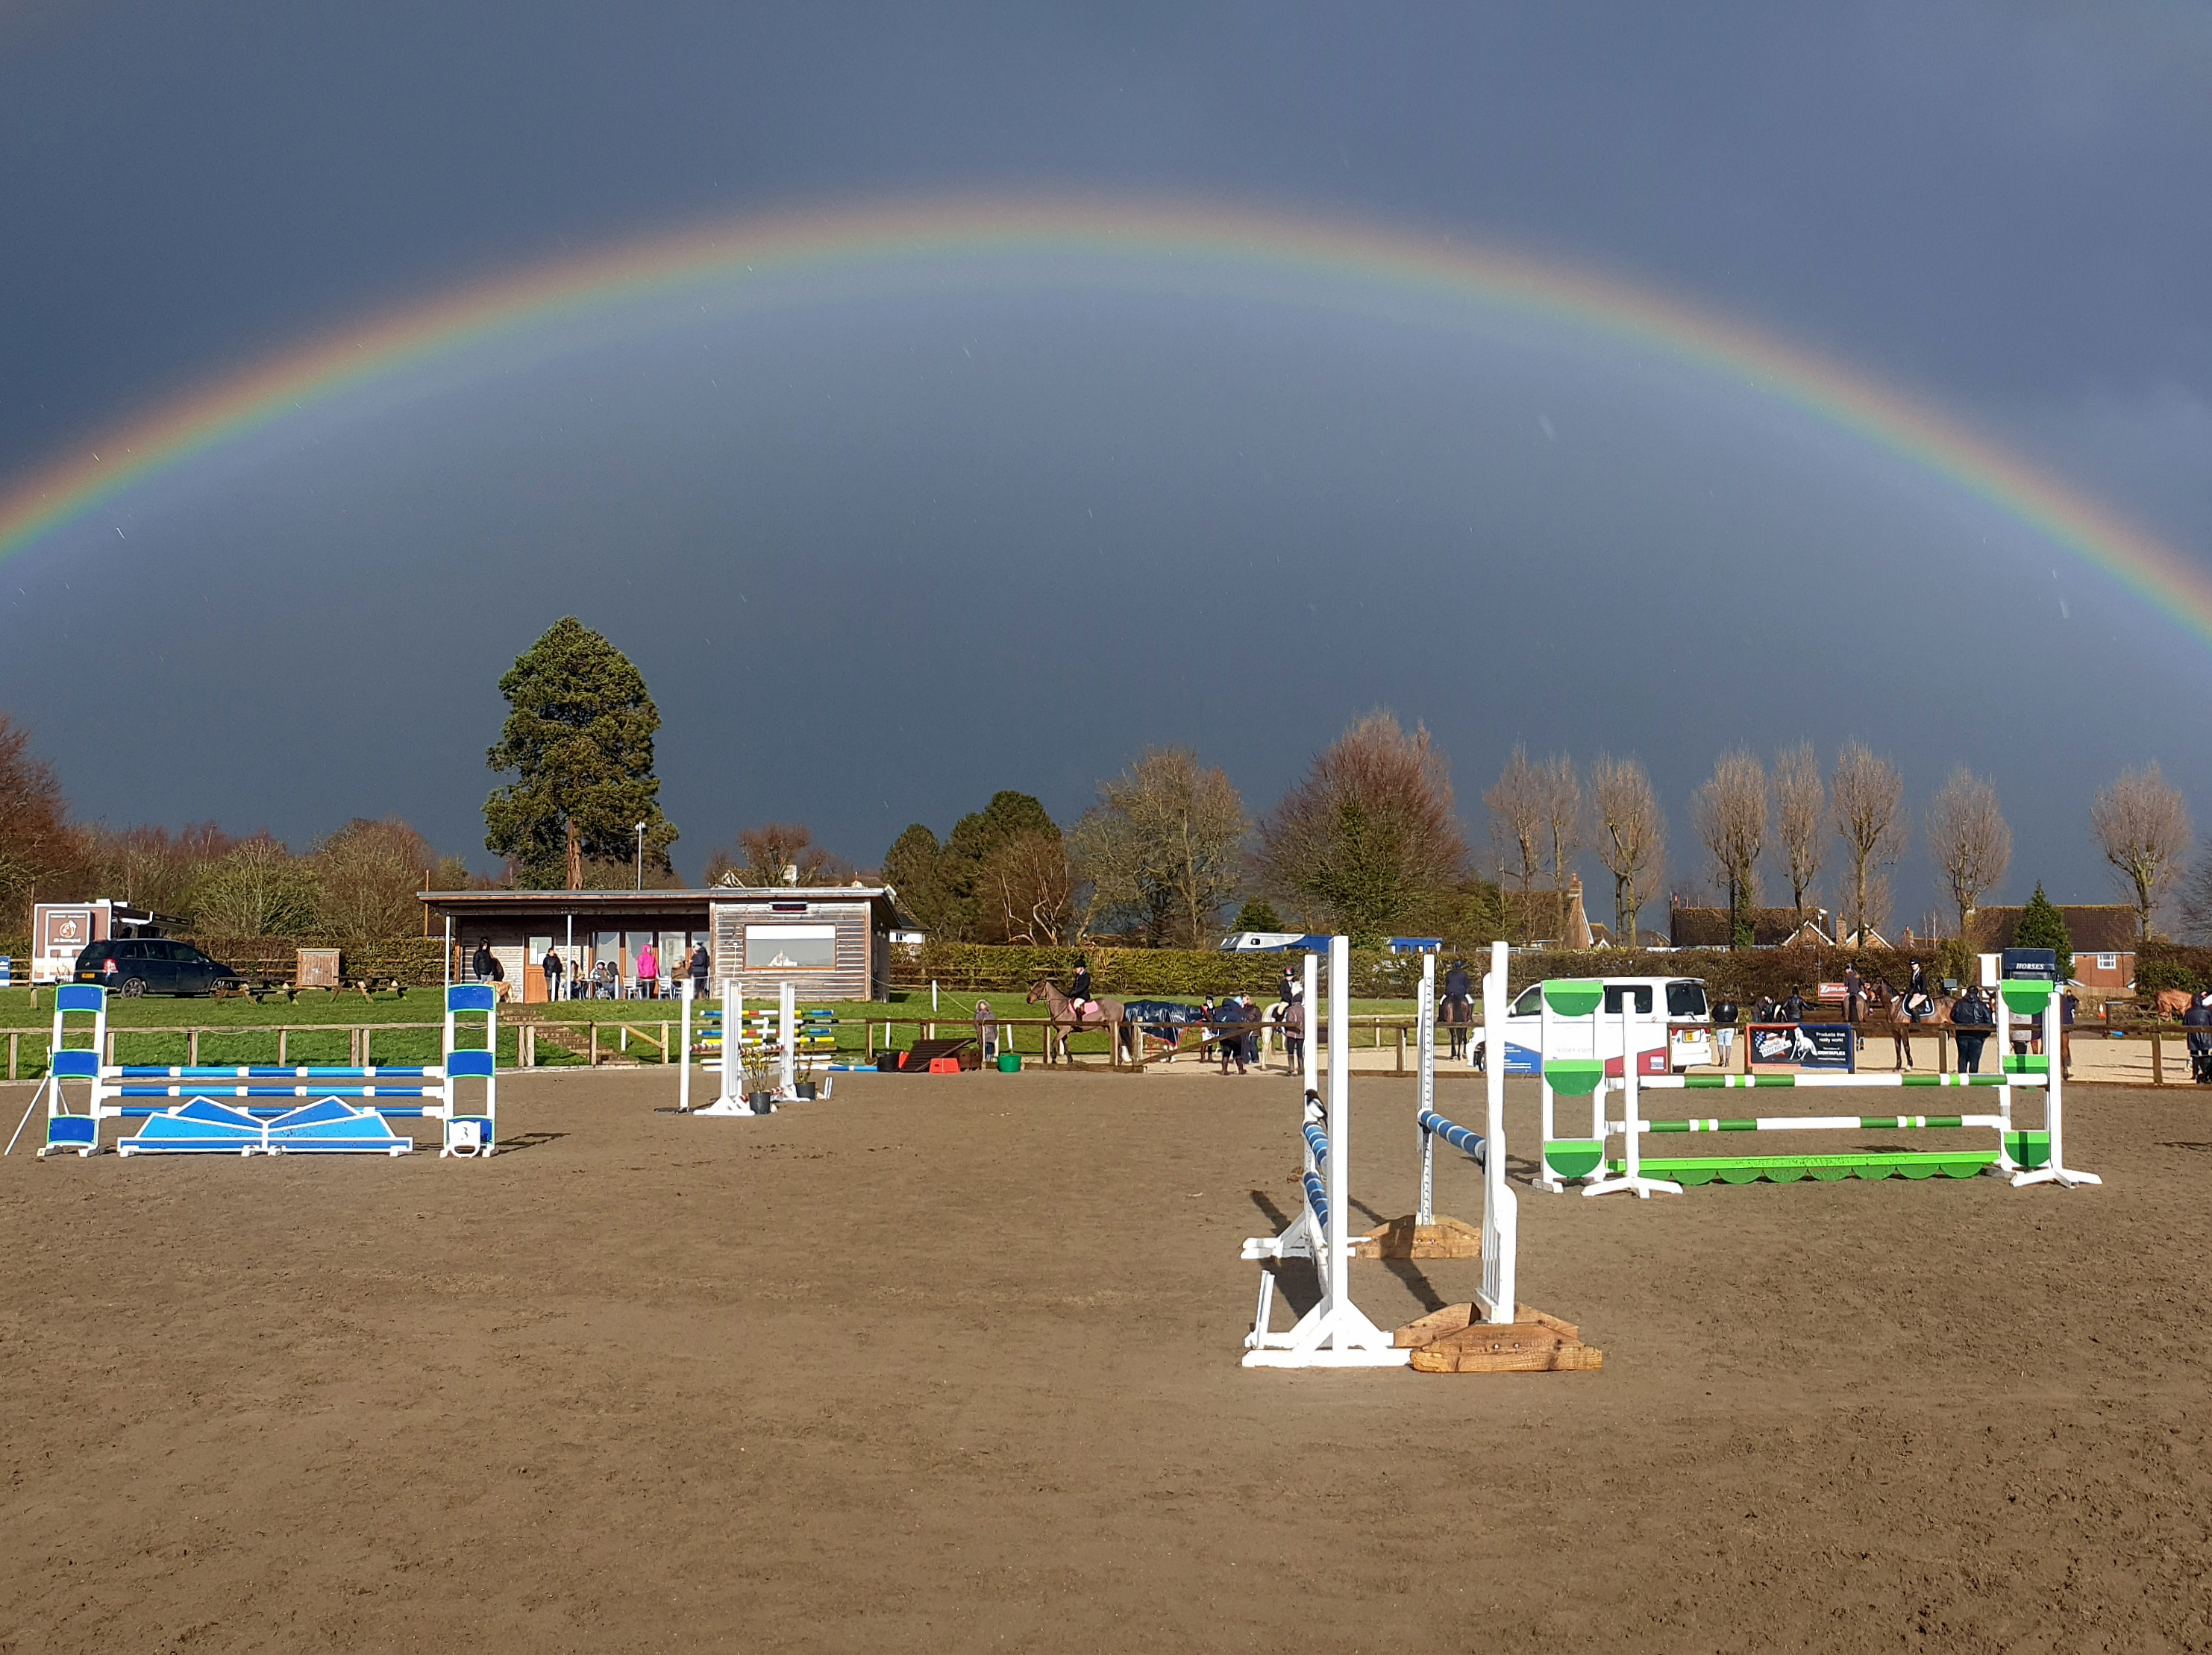 Show Jumping Arenas 4